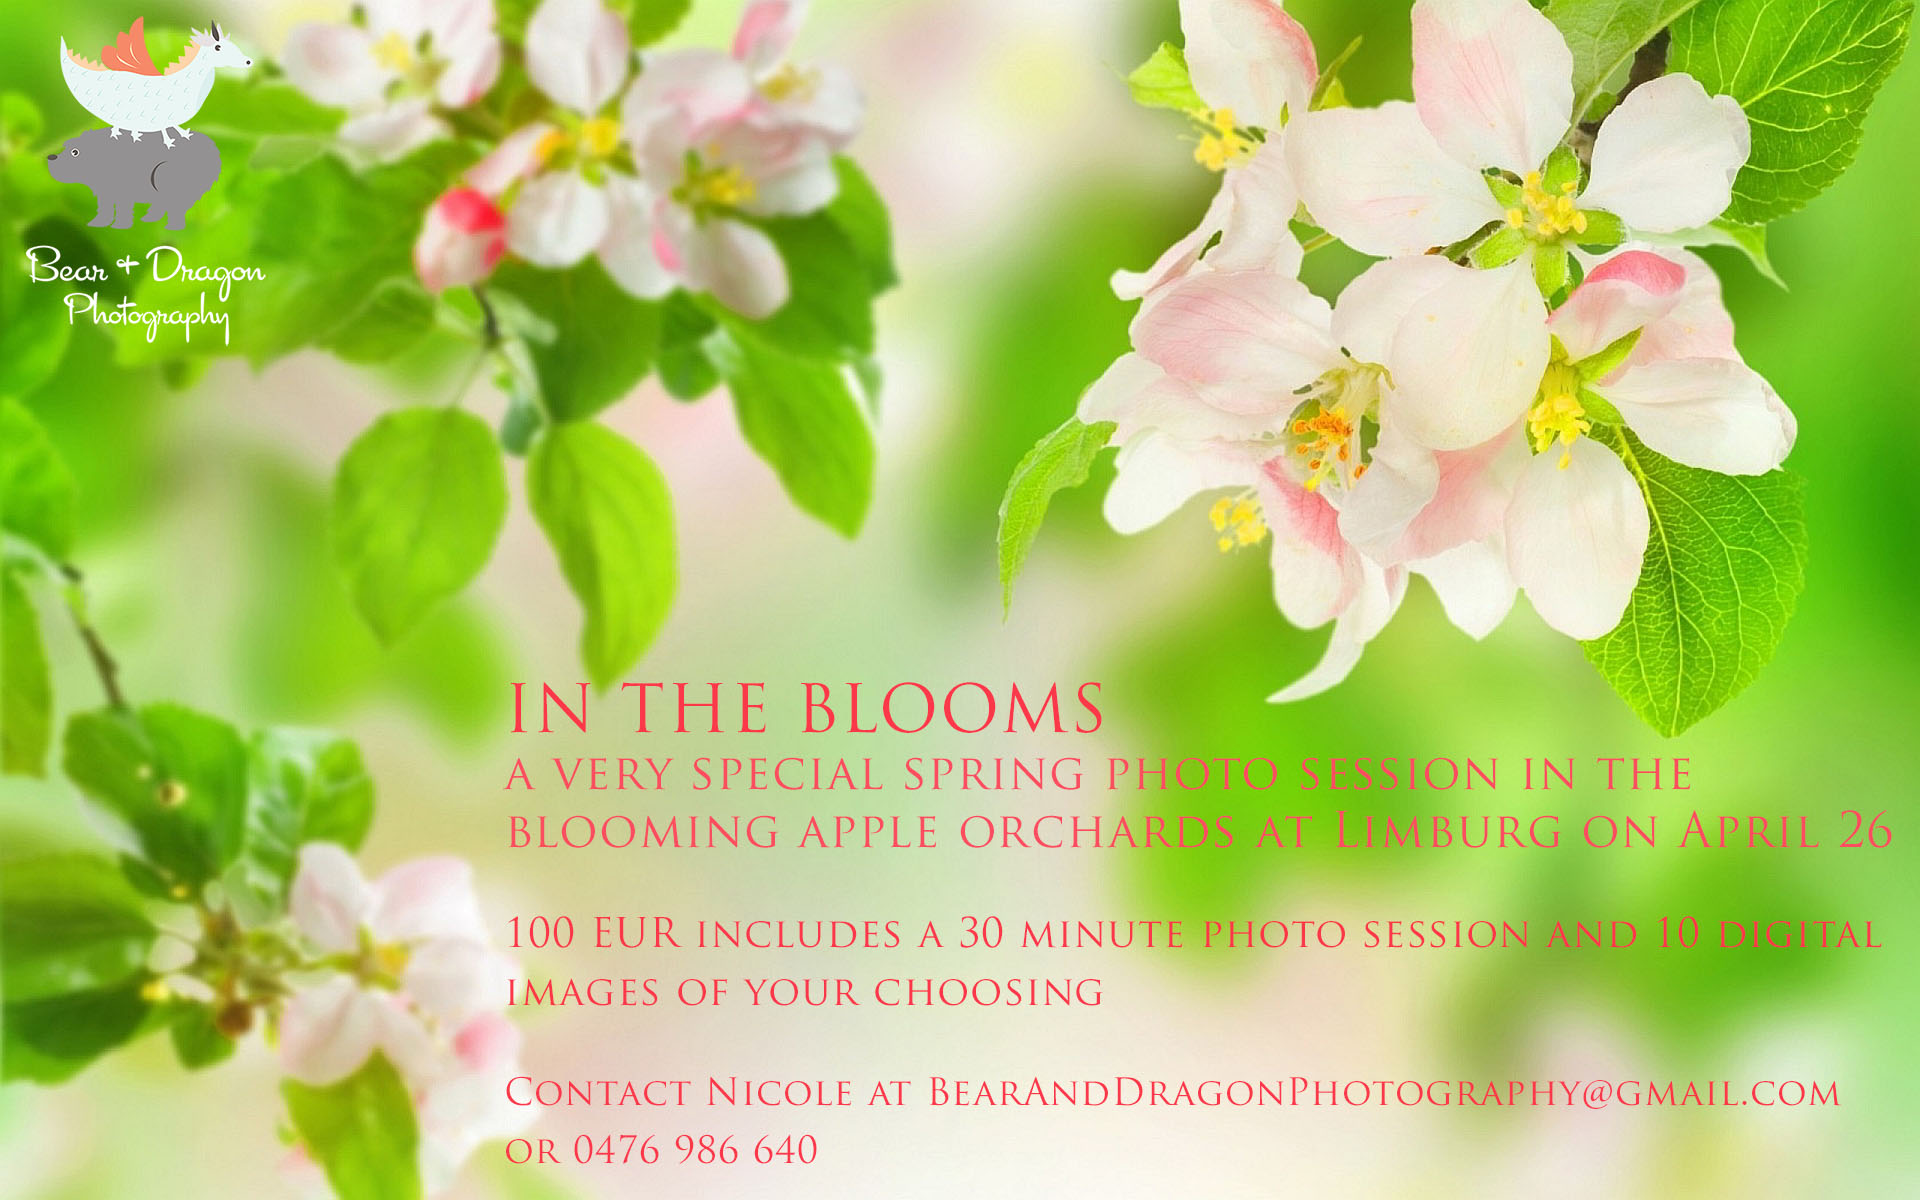 Announcing Our First 2015 Mini Session In The Blooms In The